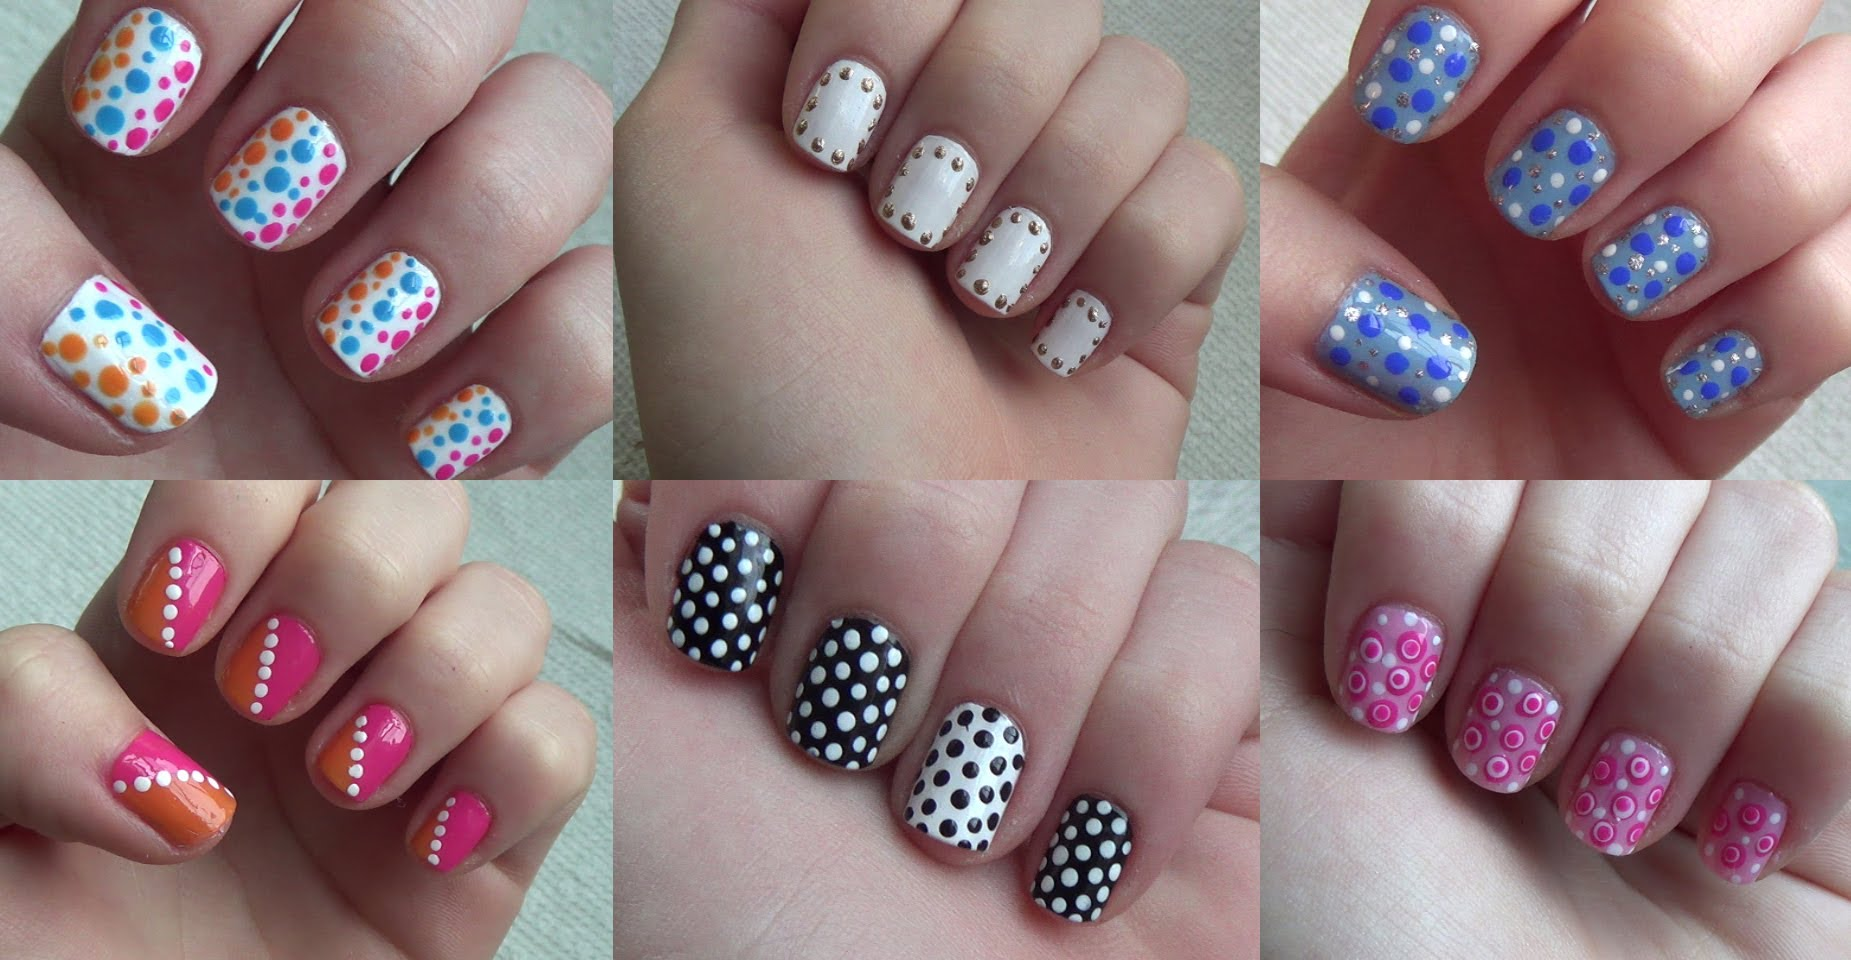 How To Do Six Simple Dot Nail Arts Step By Step Diy Tutorial Instructions How To Instructions